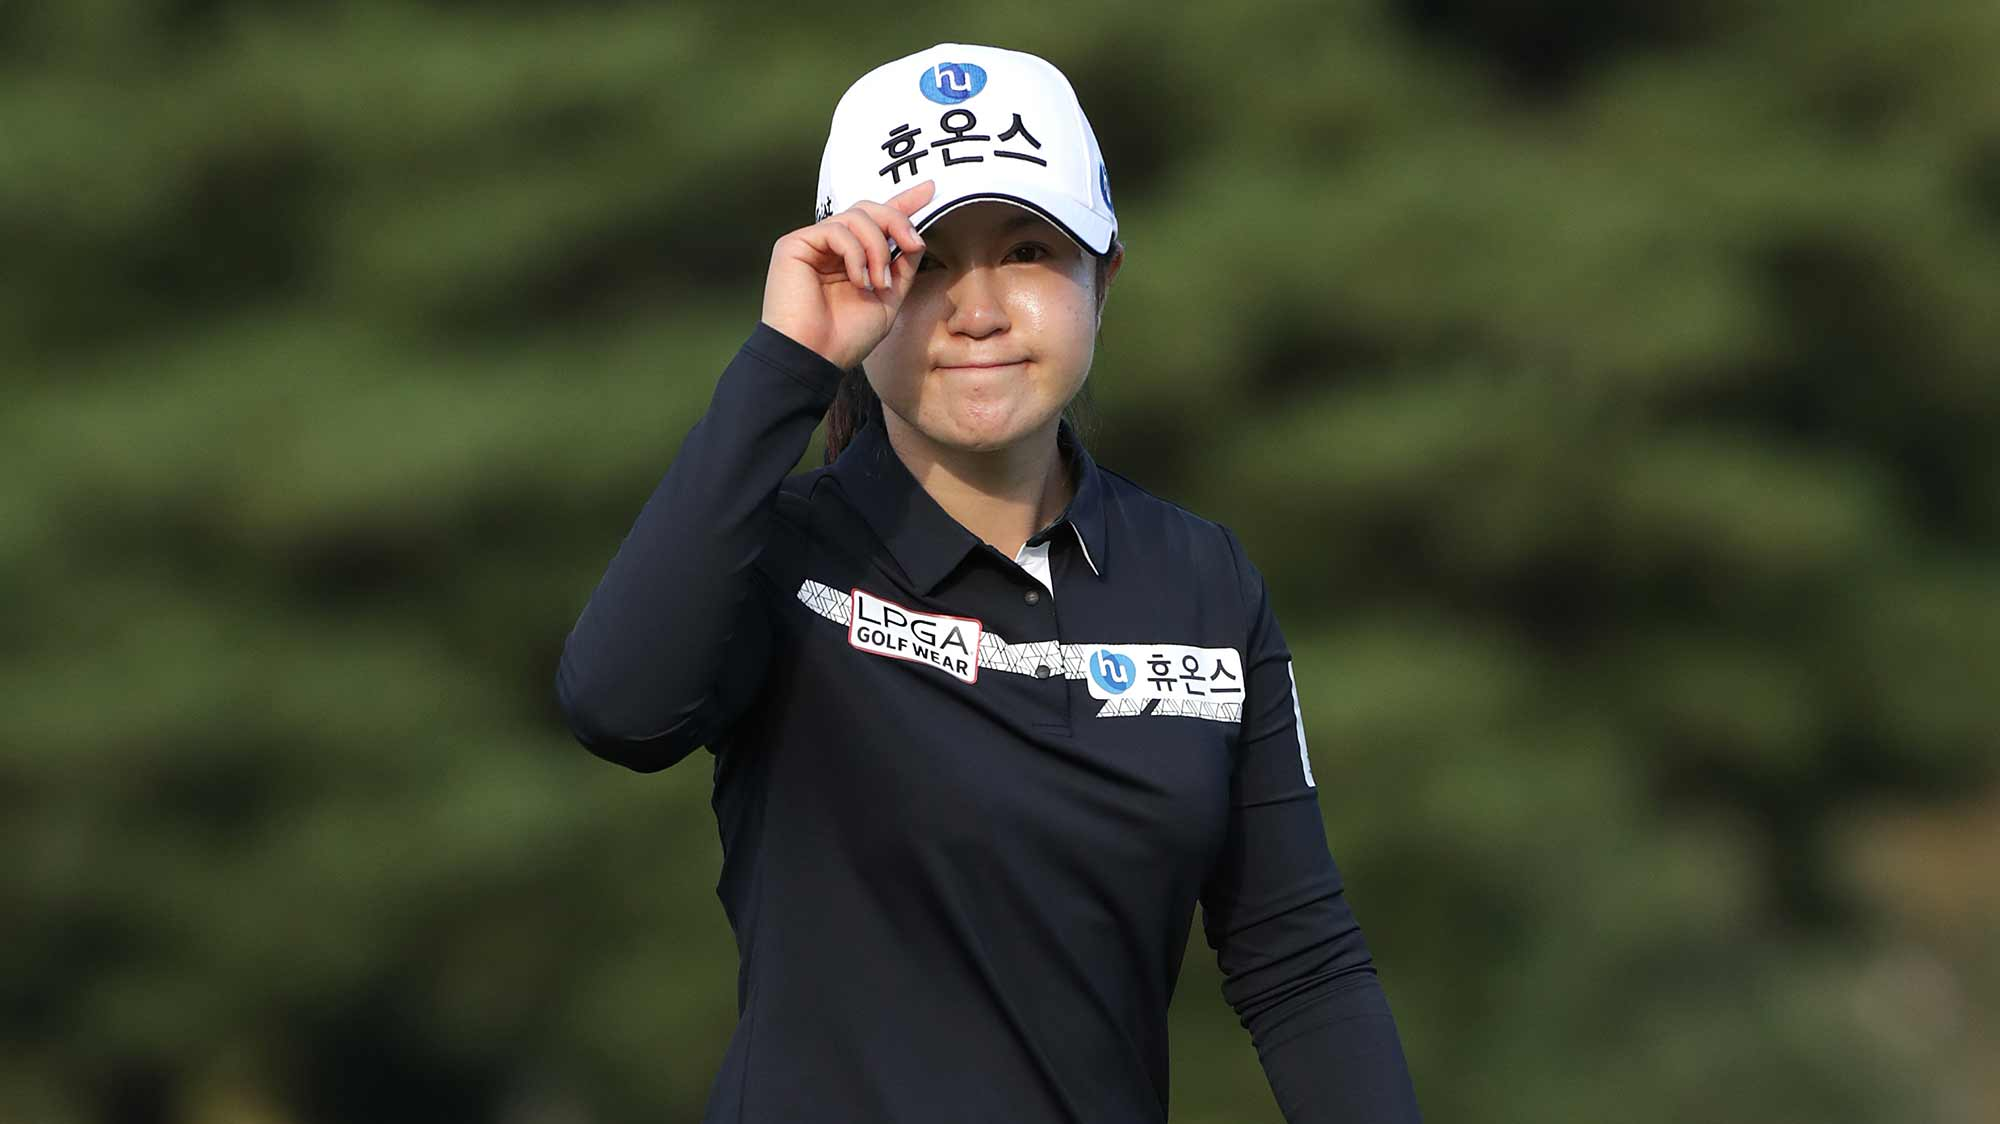 Seung Yeon Lee of Republic of Korea acknowledges the gallery on the eighteenth hole during Round 3 of 2019 BMW Ladies Championship at LPGA International Busan on October 26, 2019 in Busan, Republic of Korea